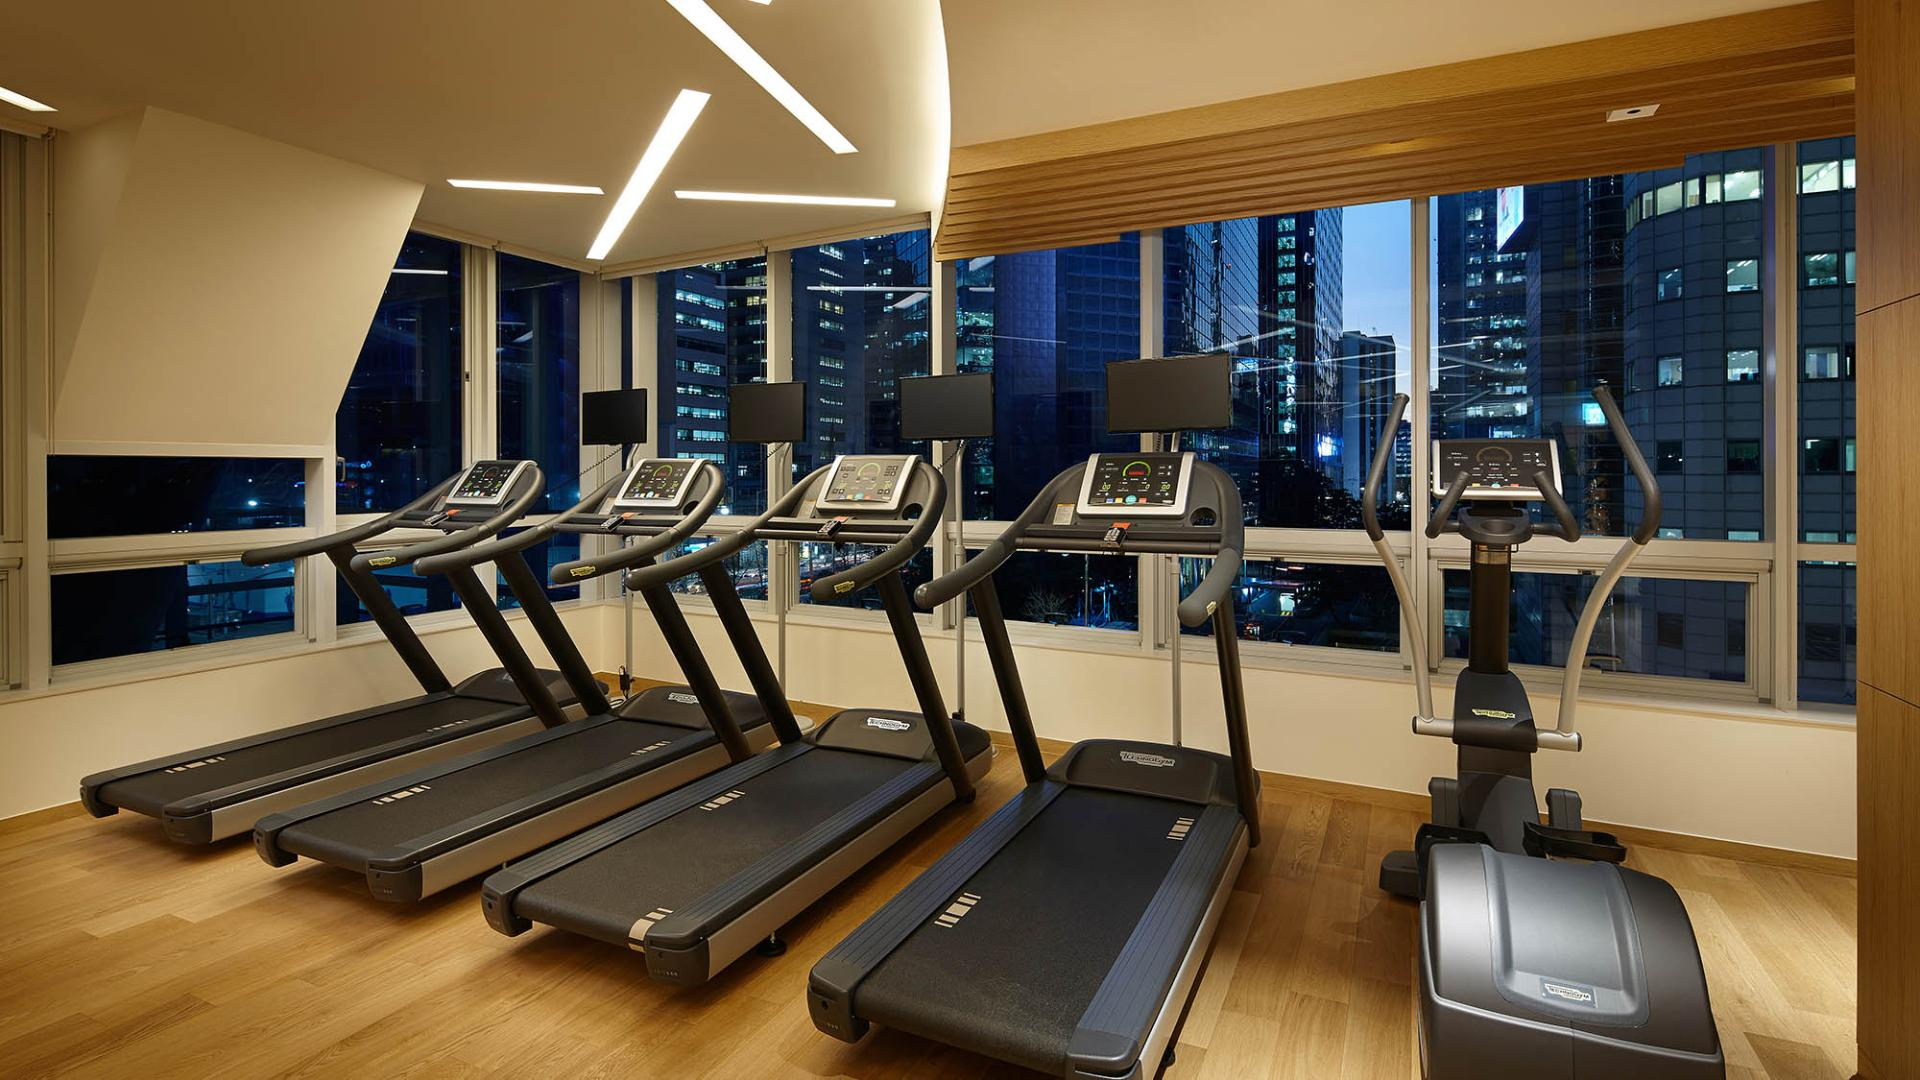 Lotte City Hotel Myeongdong-Facilities-Fitness